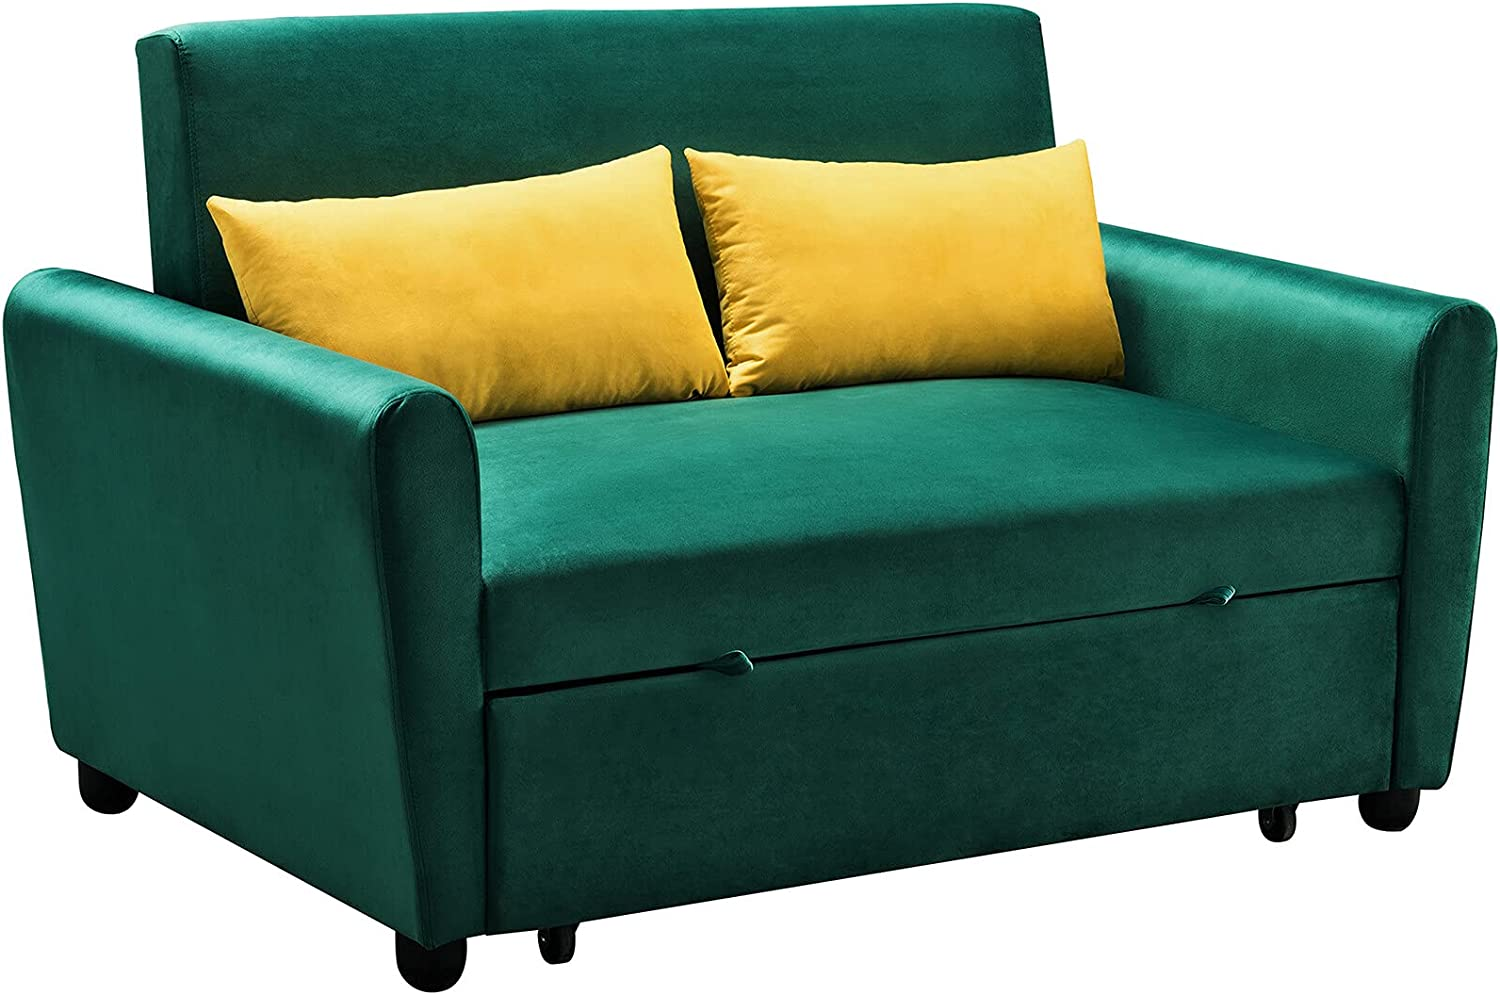 Durable Long-awaited Velvet Large special price !! Sofa with Pull-Out Bed Loveseat wit Couch Sleeper